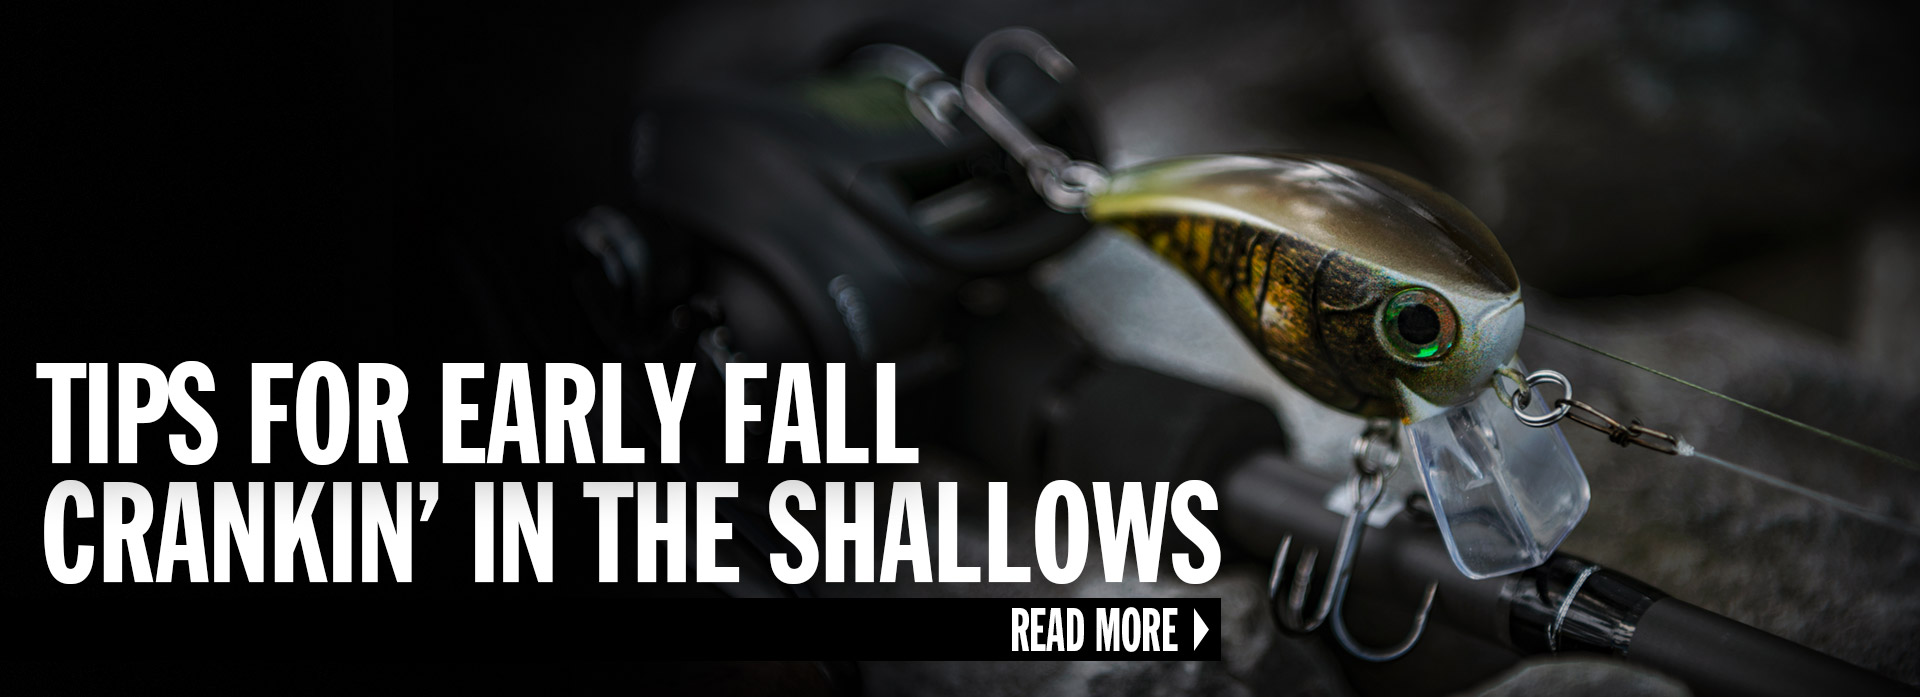 Tips For Early Fall Crankin' In The Shallows